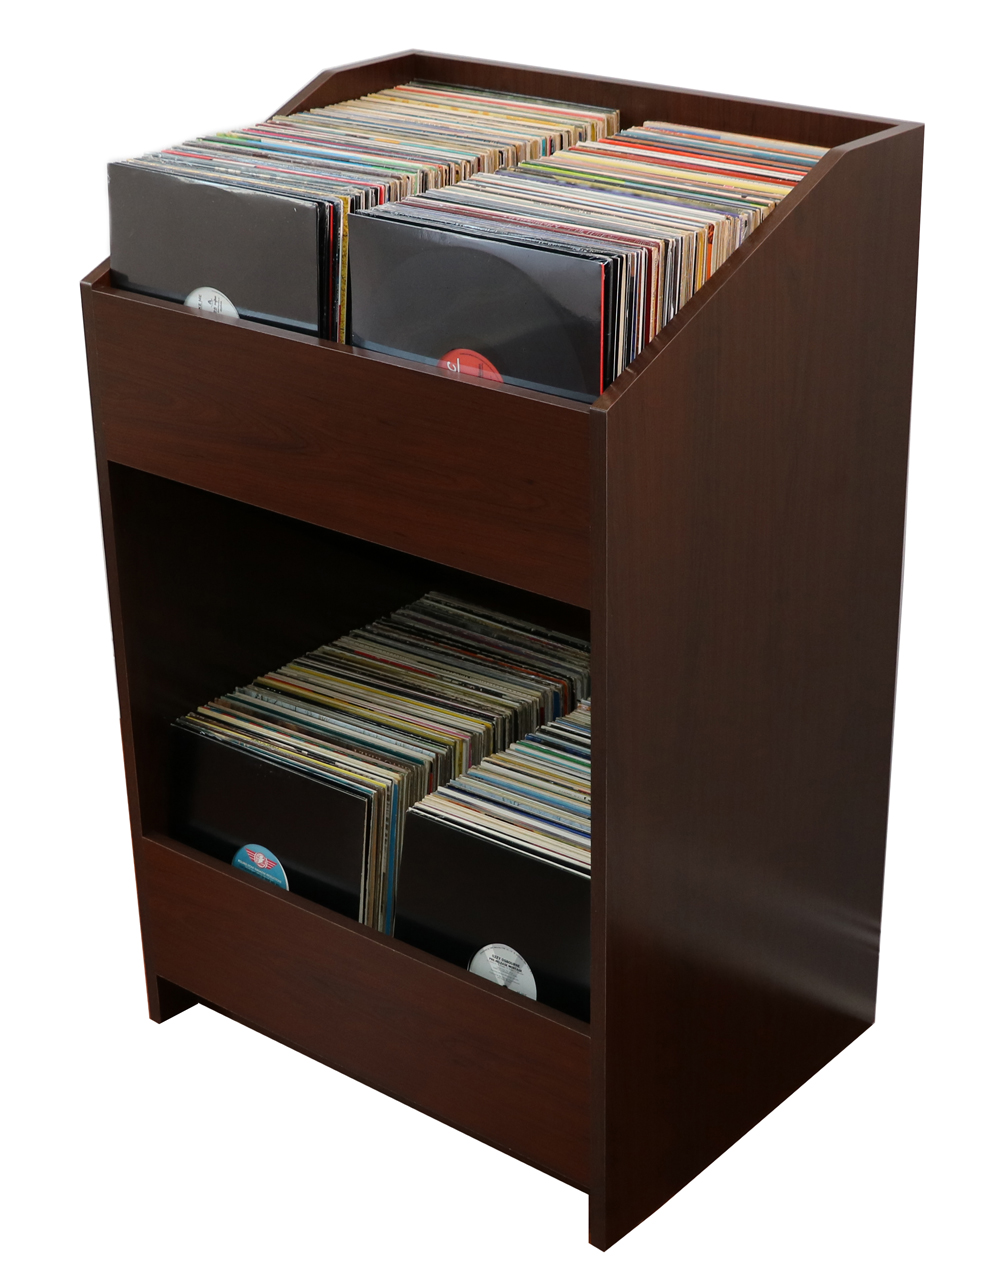 What are some stores that sell storage racks for vinyl records?